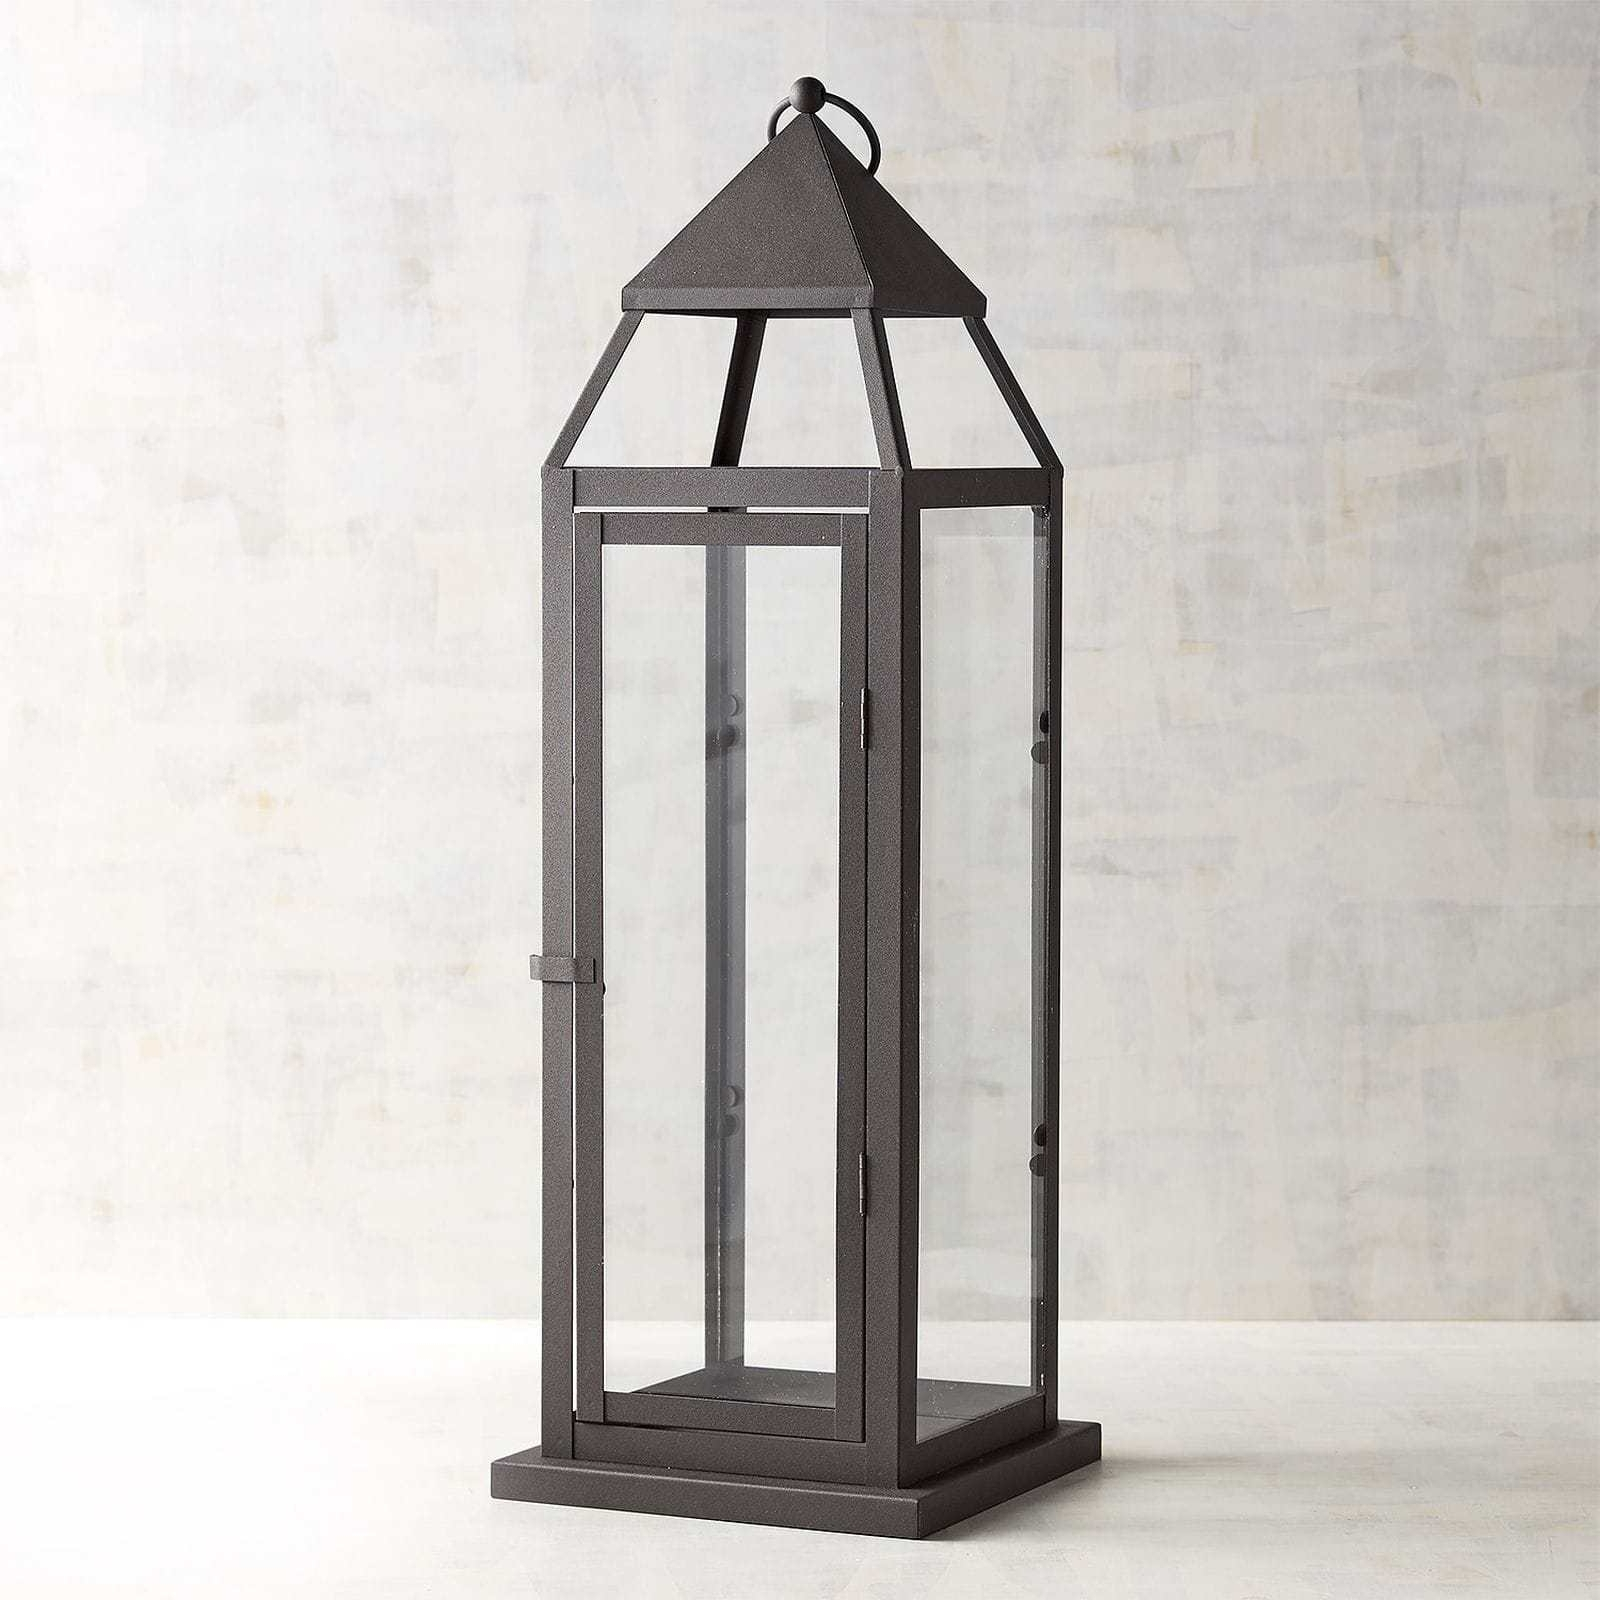 Outdoor Metal Lanterns For Candles Pertaining To Trendy Examplary Landen Large Black Metal Lantern Pier Imports Candle (Gallery 14 of 20)